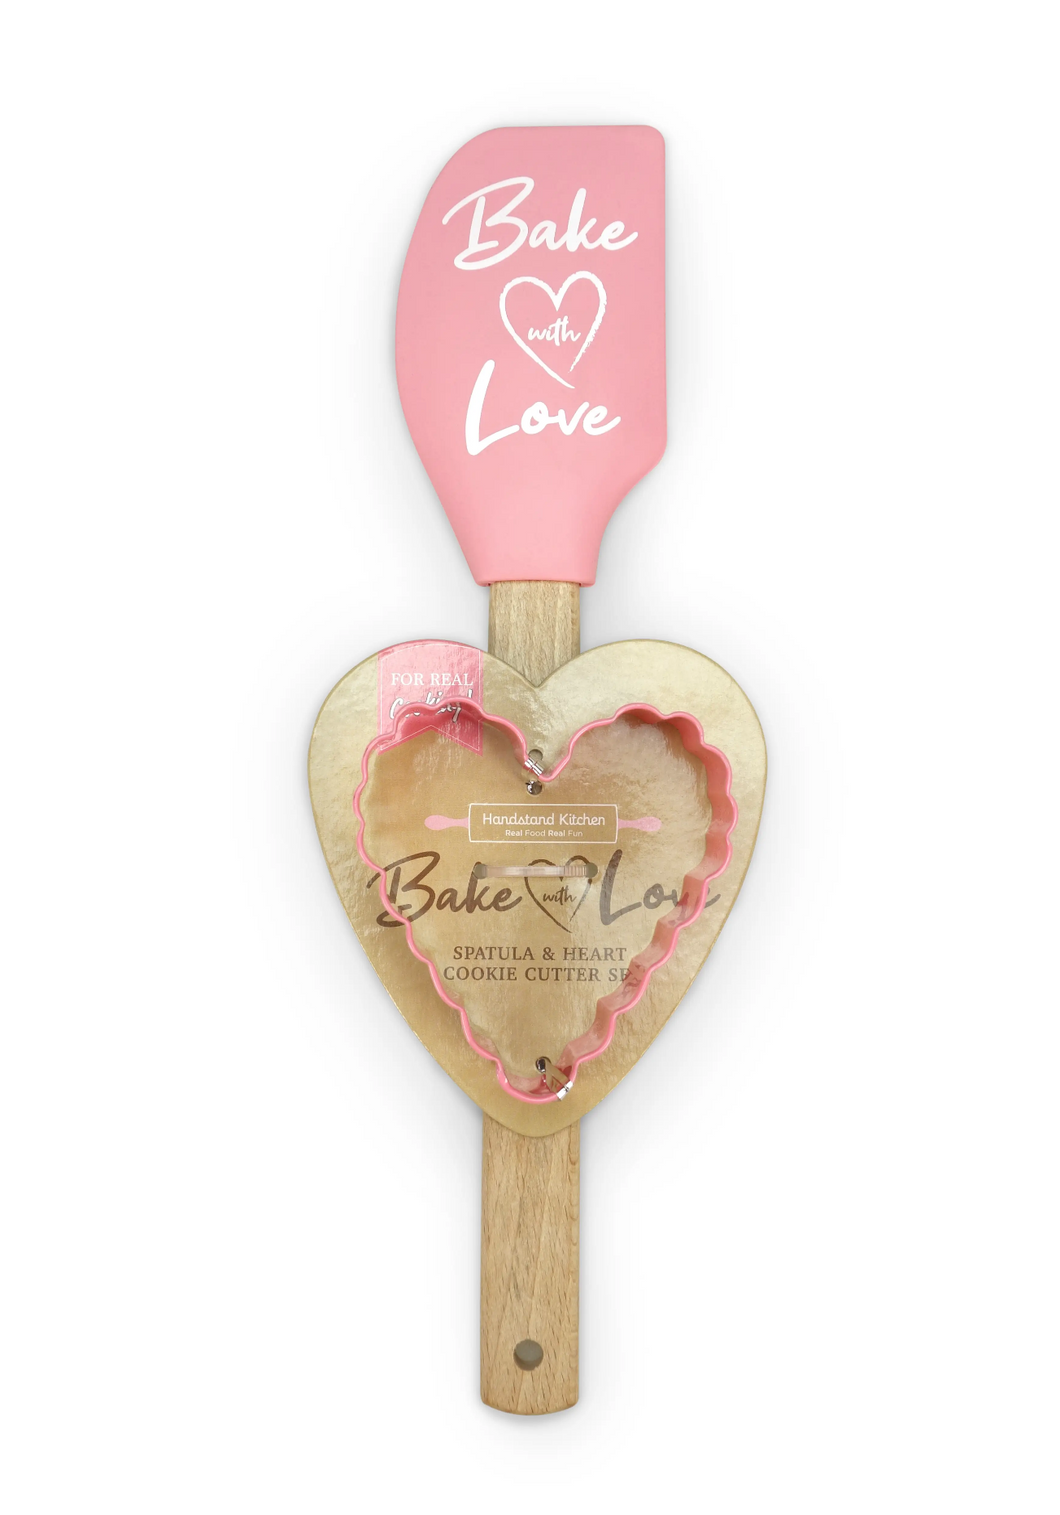 Bake with Love Spatula & Heart Cookie Cutter